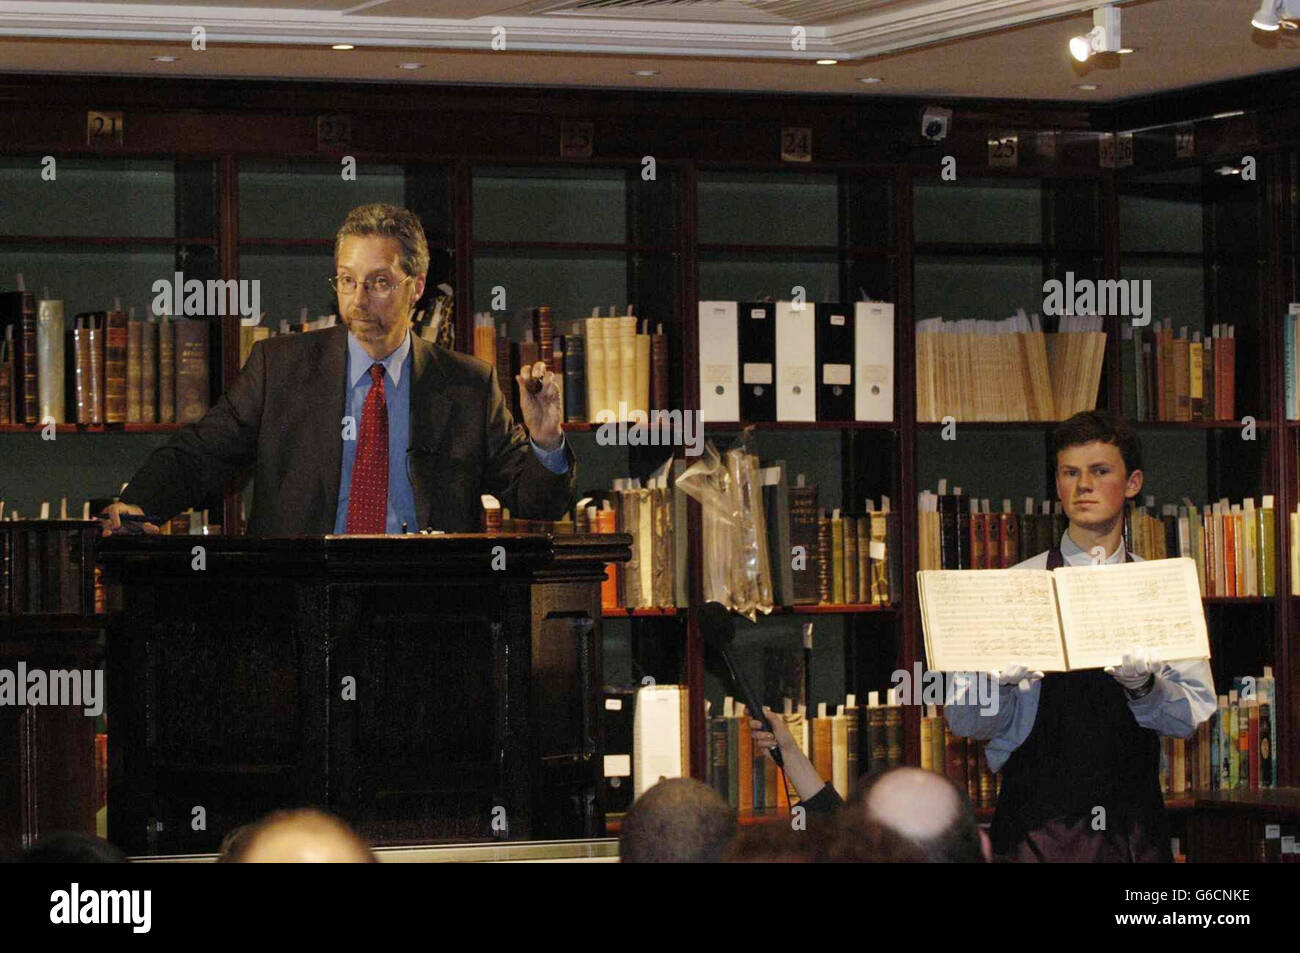 Beethoven auction at Sotheby's - Stock Image